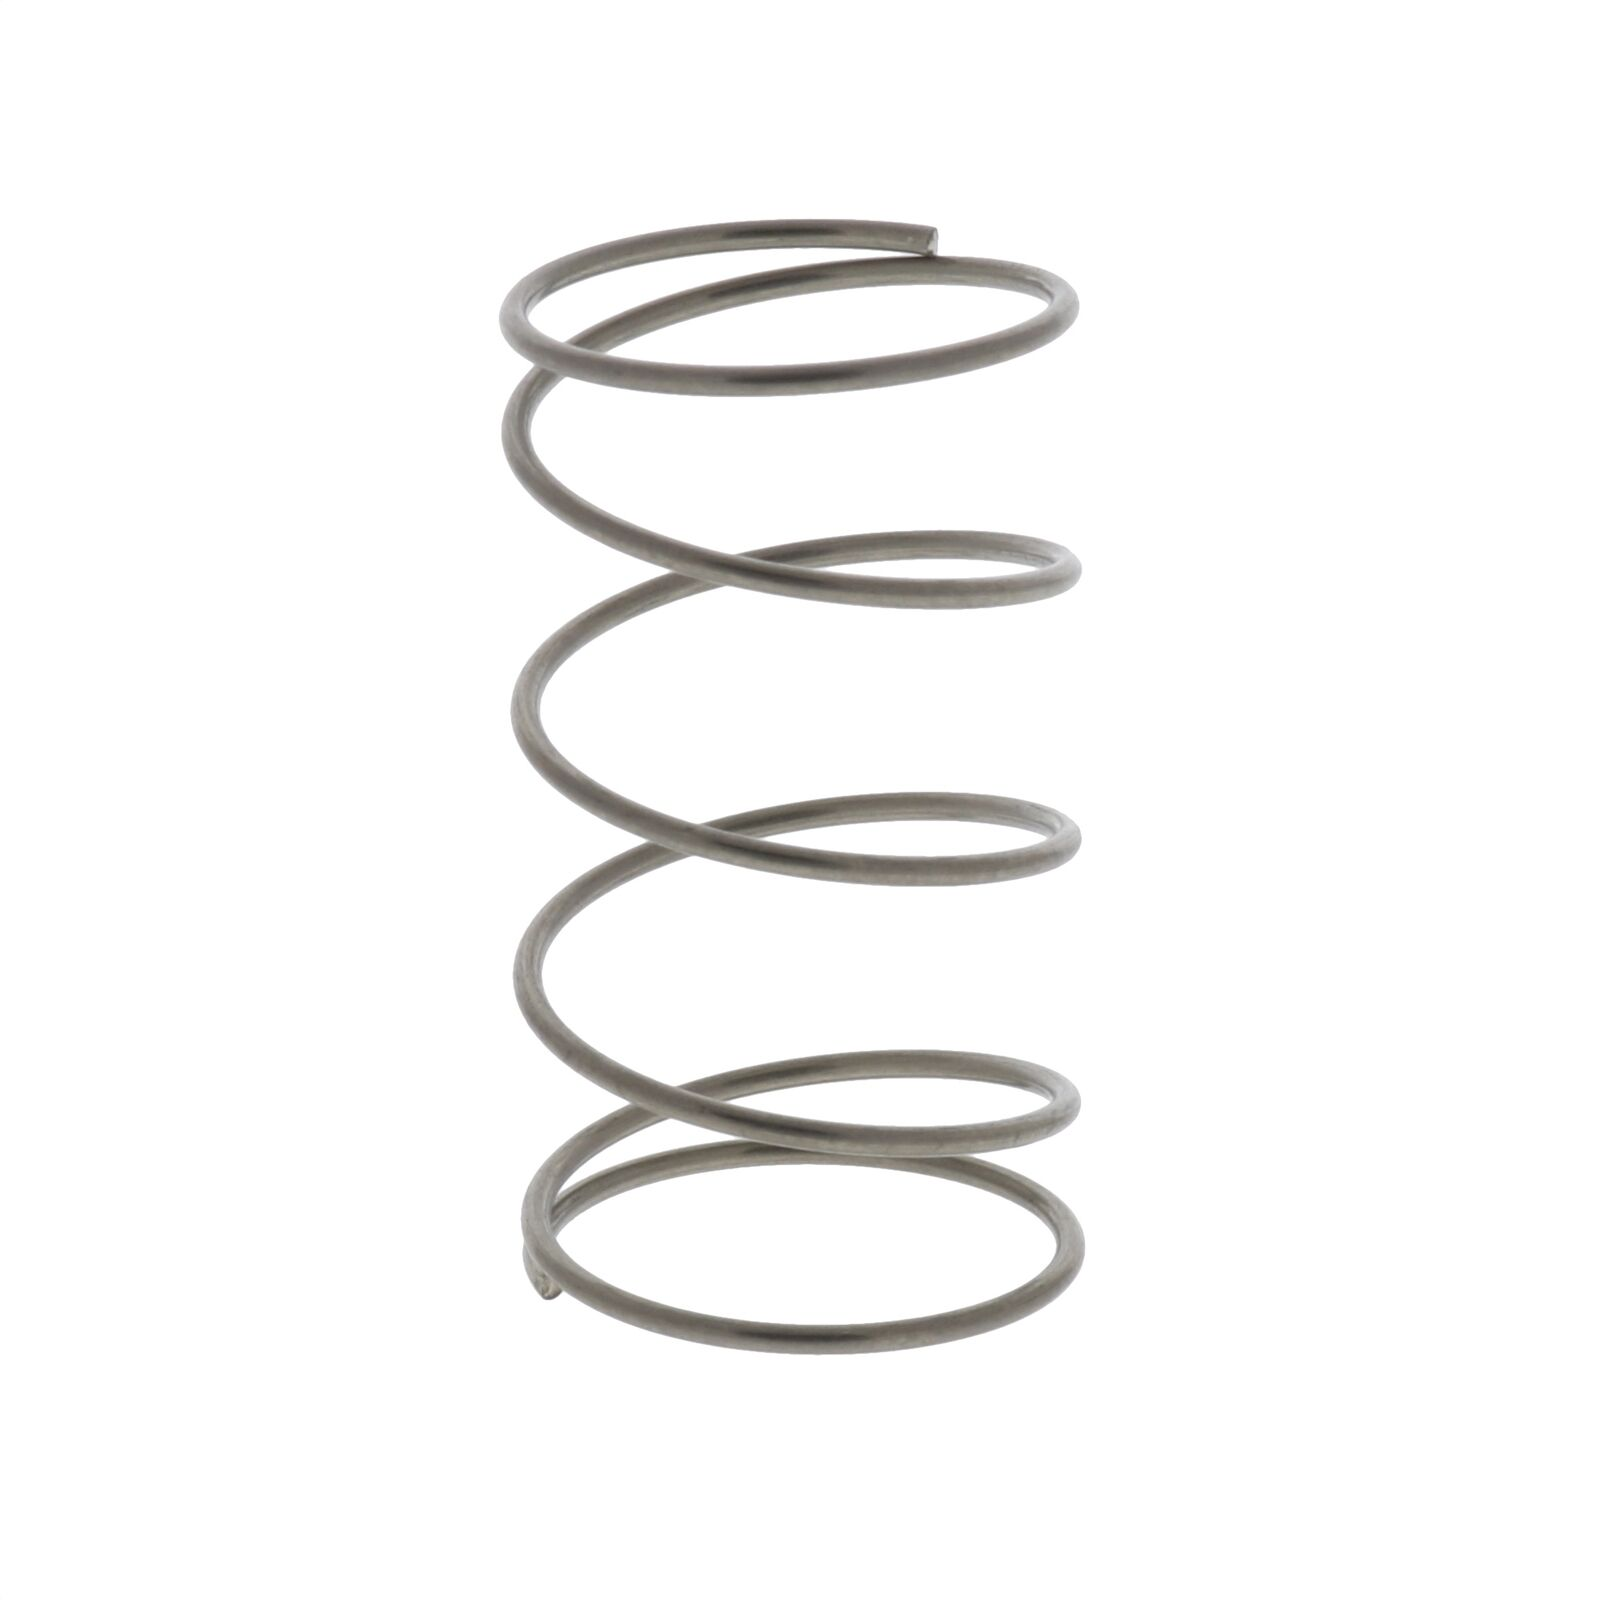 Replacement Valve Diaphragm Spring by Irritrol-5 pack